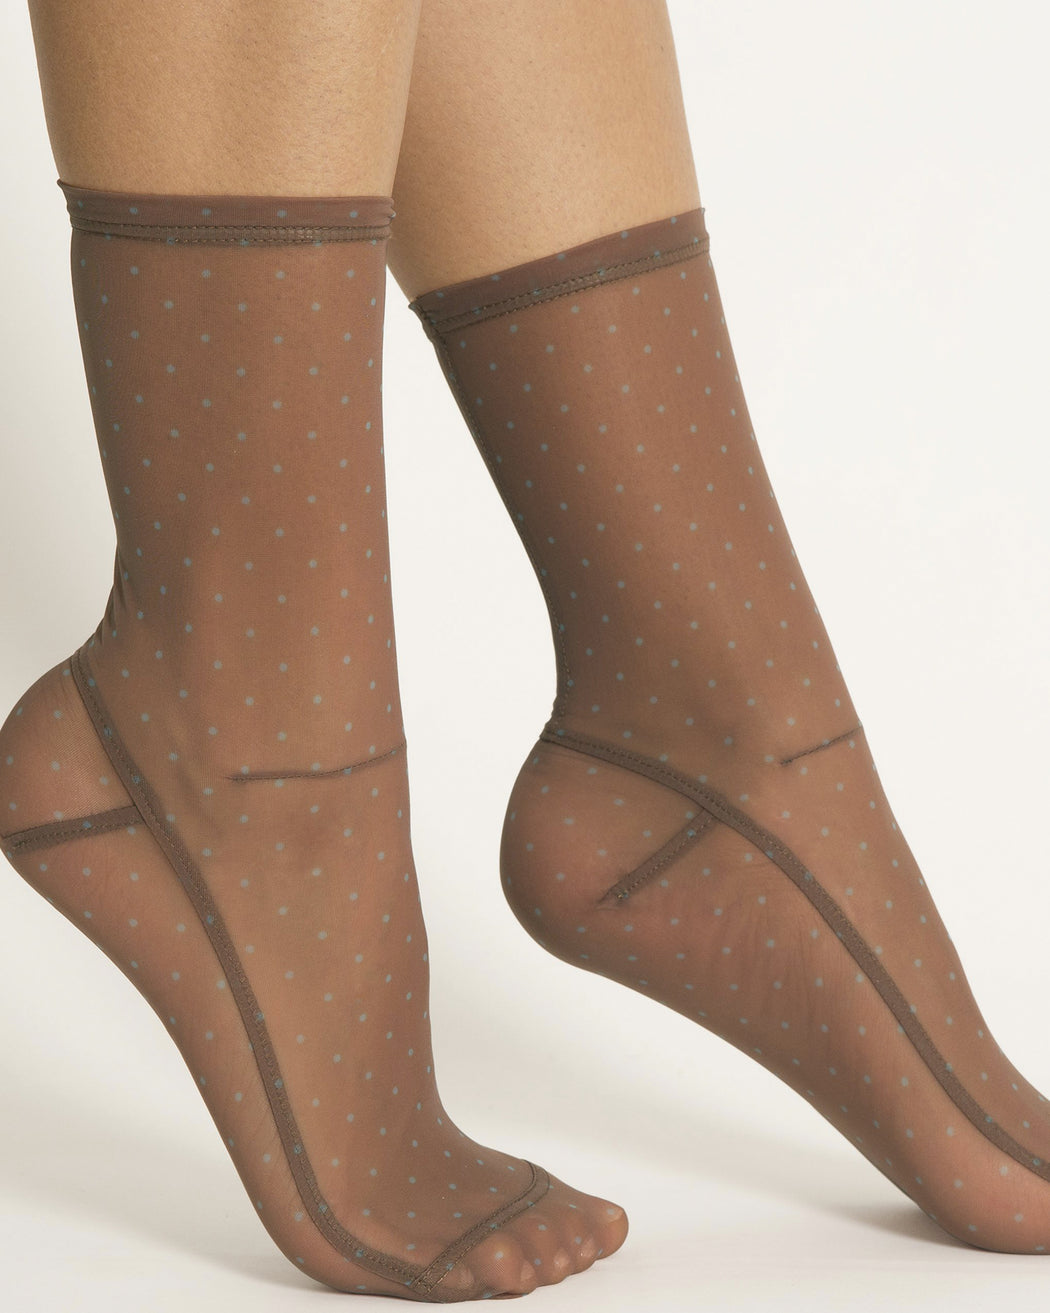 Darner:Mocha with Powder Blue Mini Dots Mesh Socks,ANOMIE